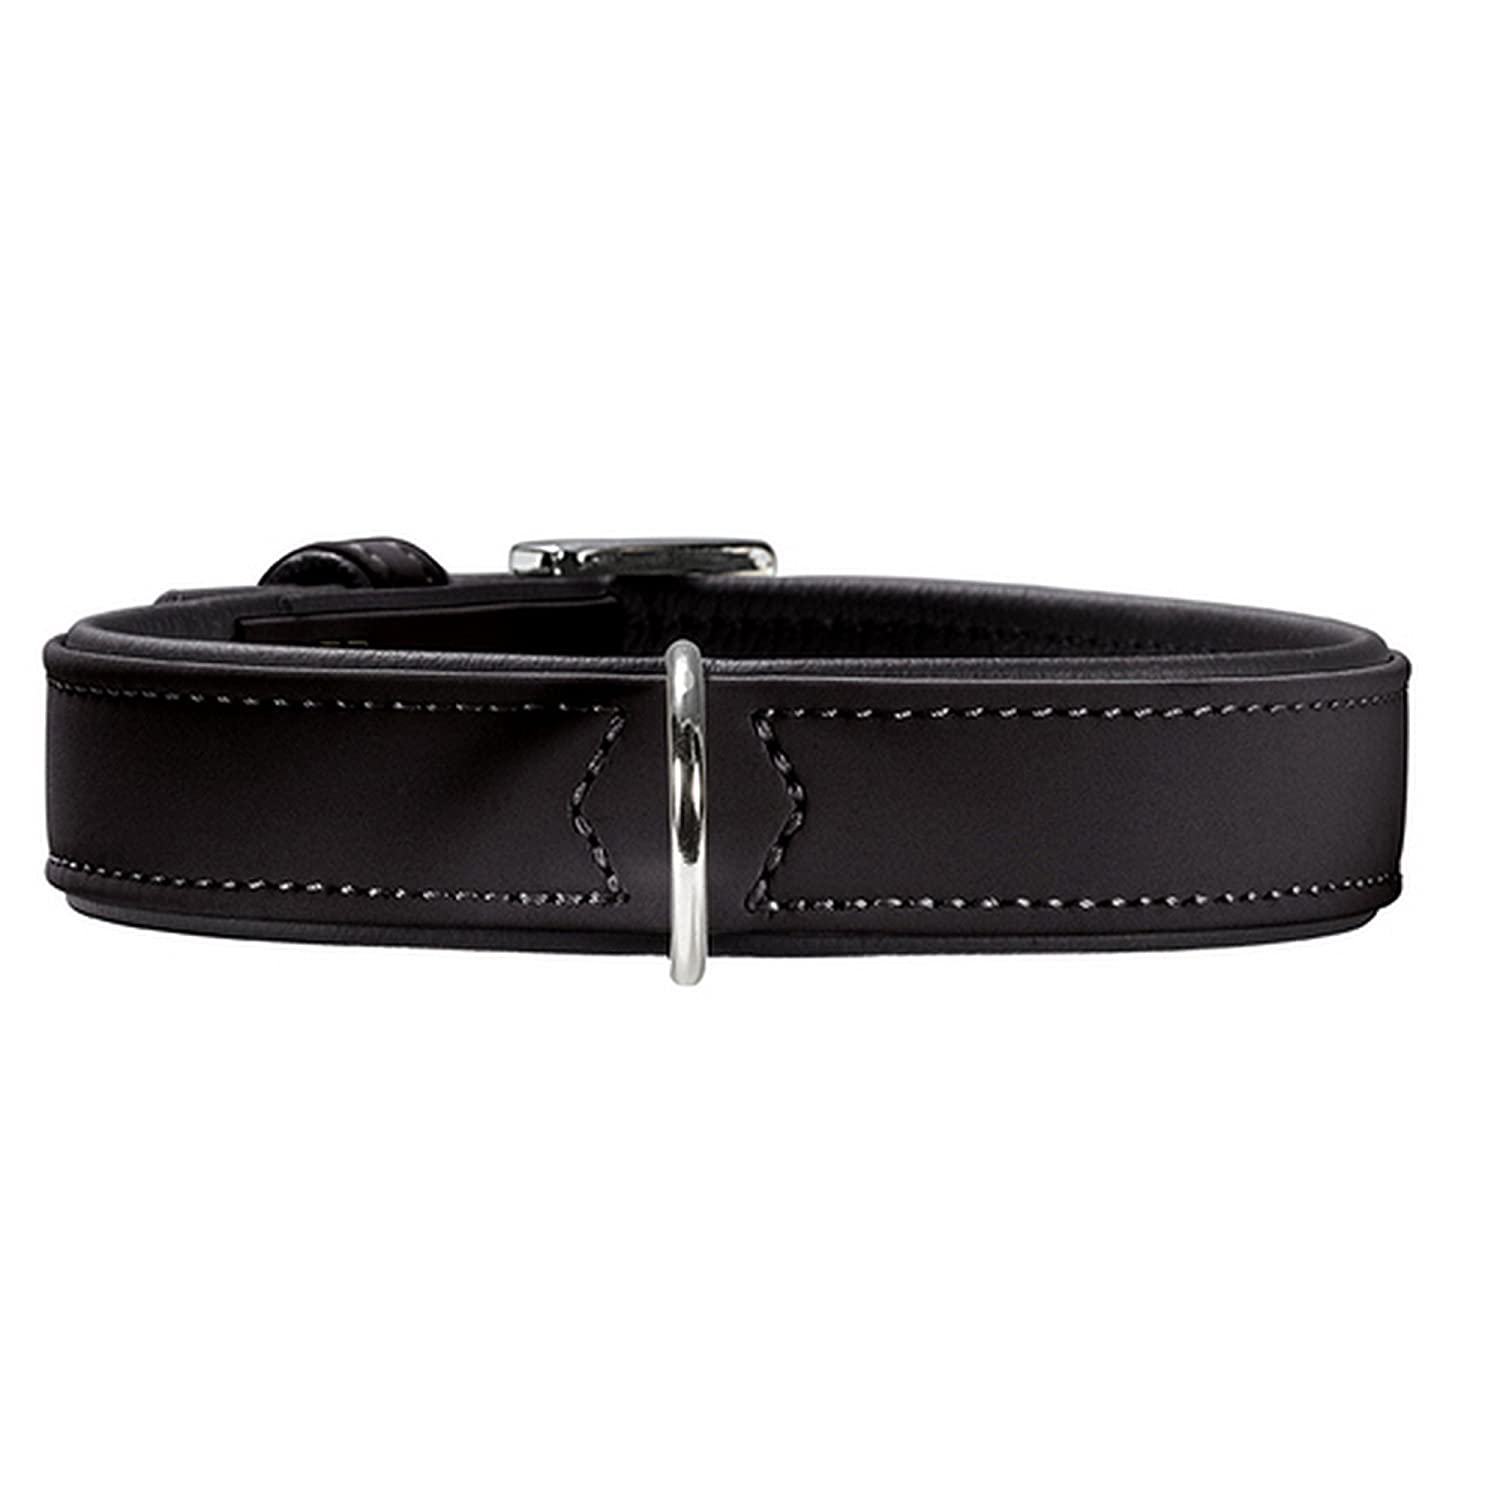 Black 50 Black 50 Hunter Softie Adjustable Leather Dog Collar (50) (Black)